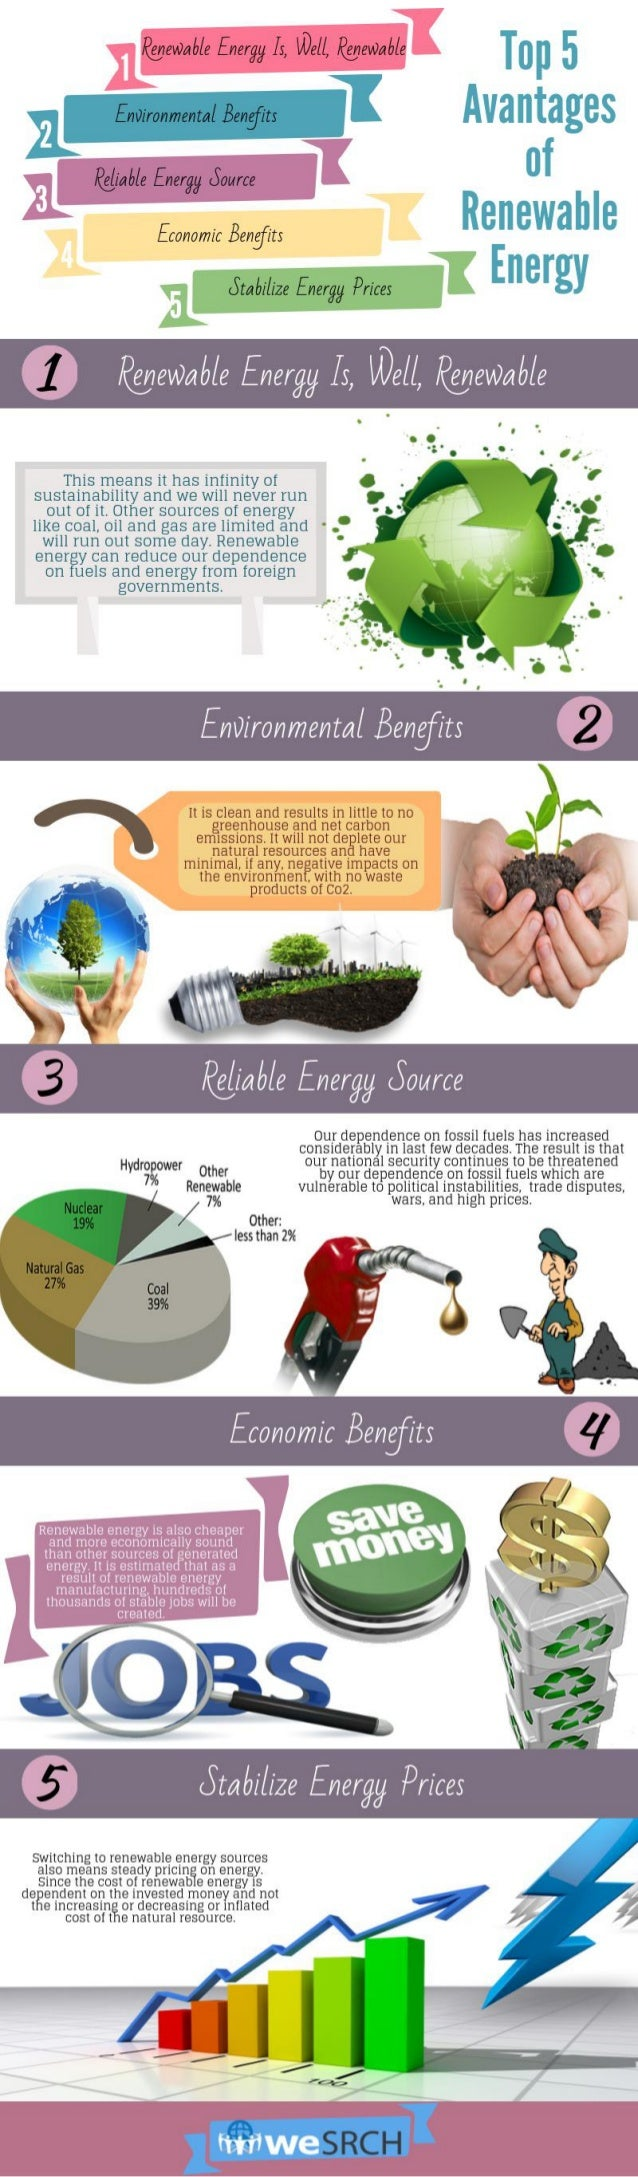 Top 5 Advantages of Renewable Energy